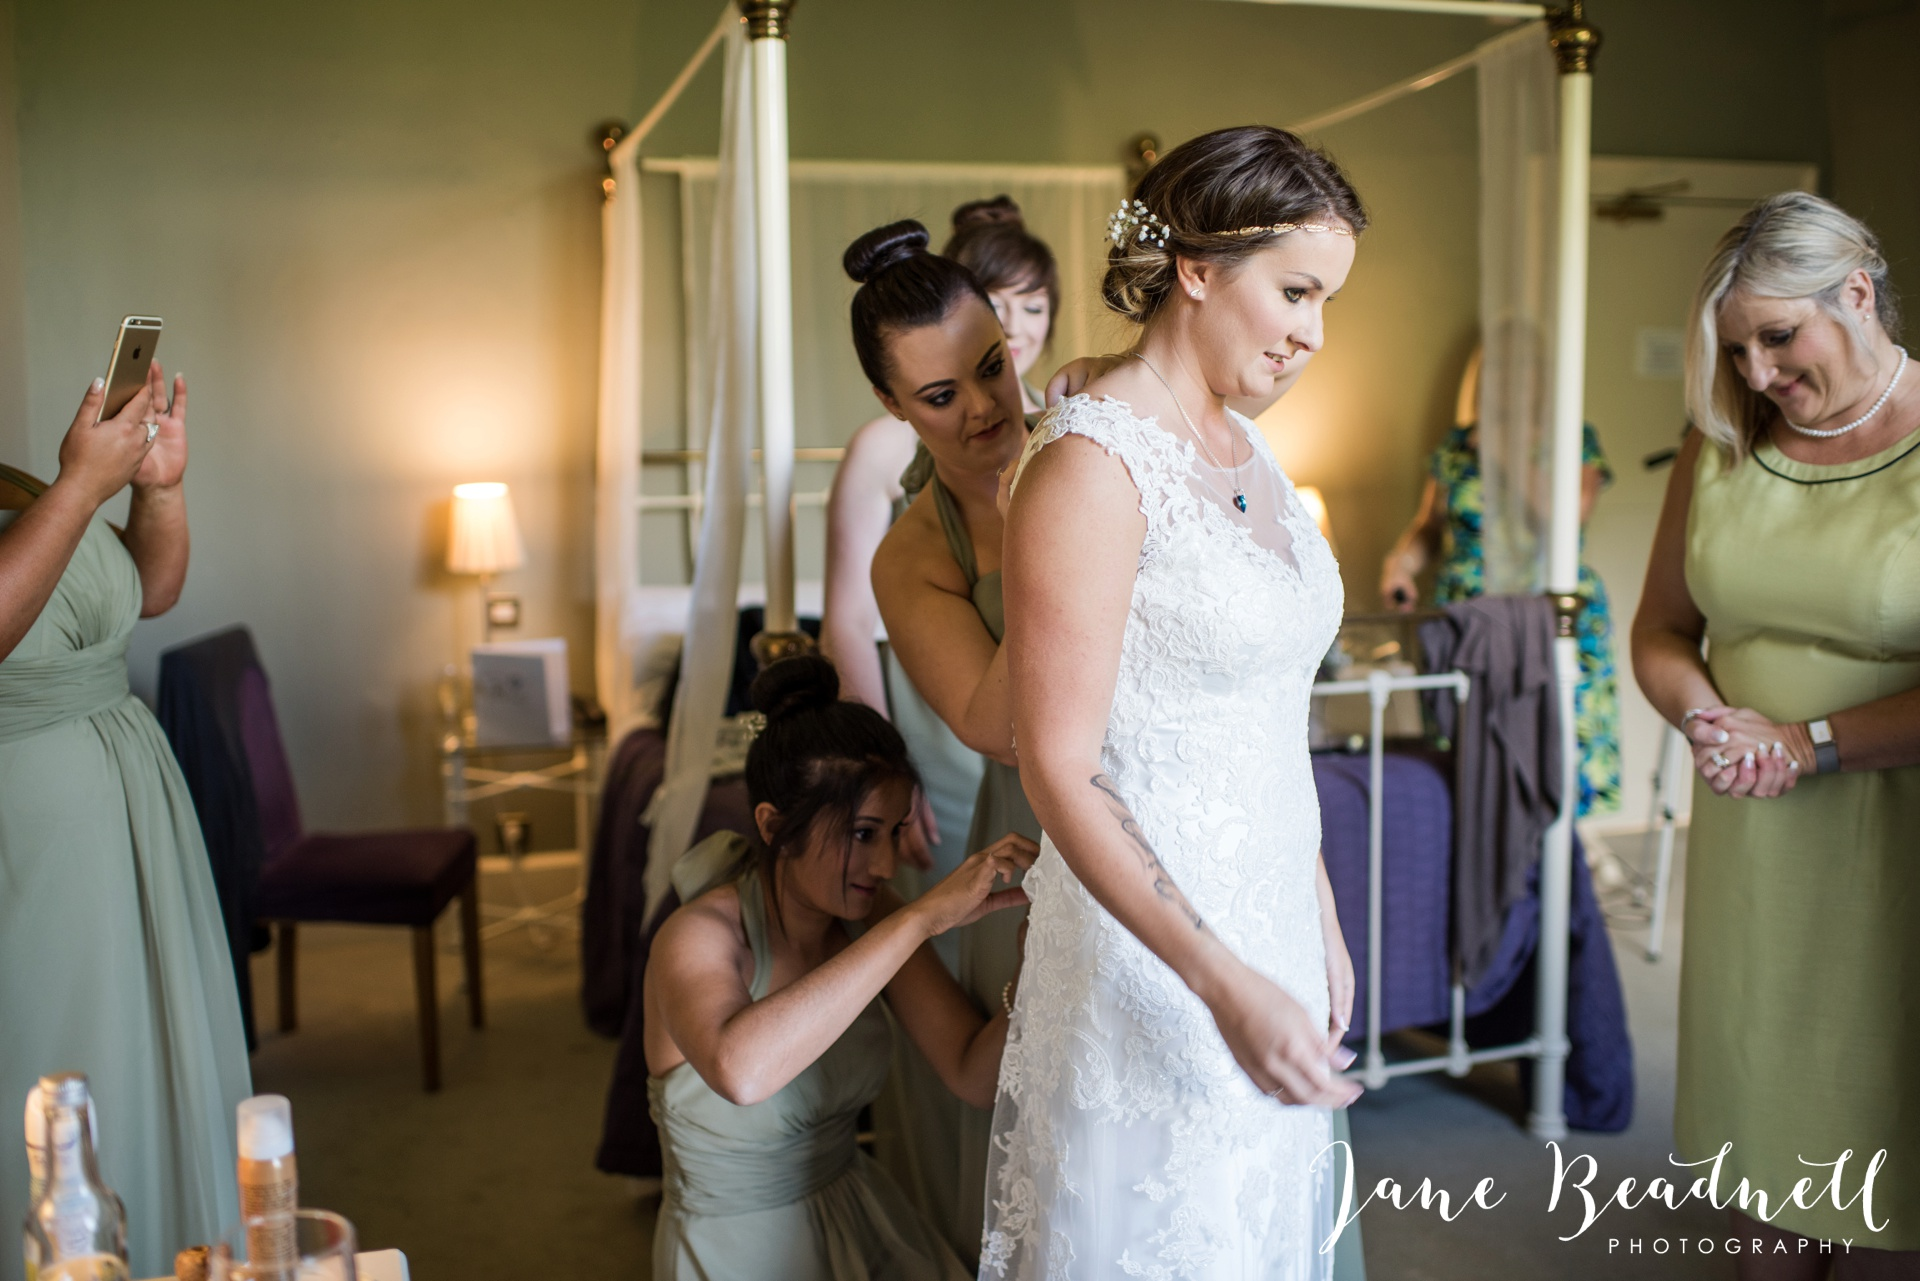 Jane Beadnell fine art wedding photographer The Old Deanery Ripon_0015